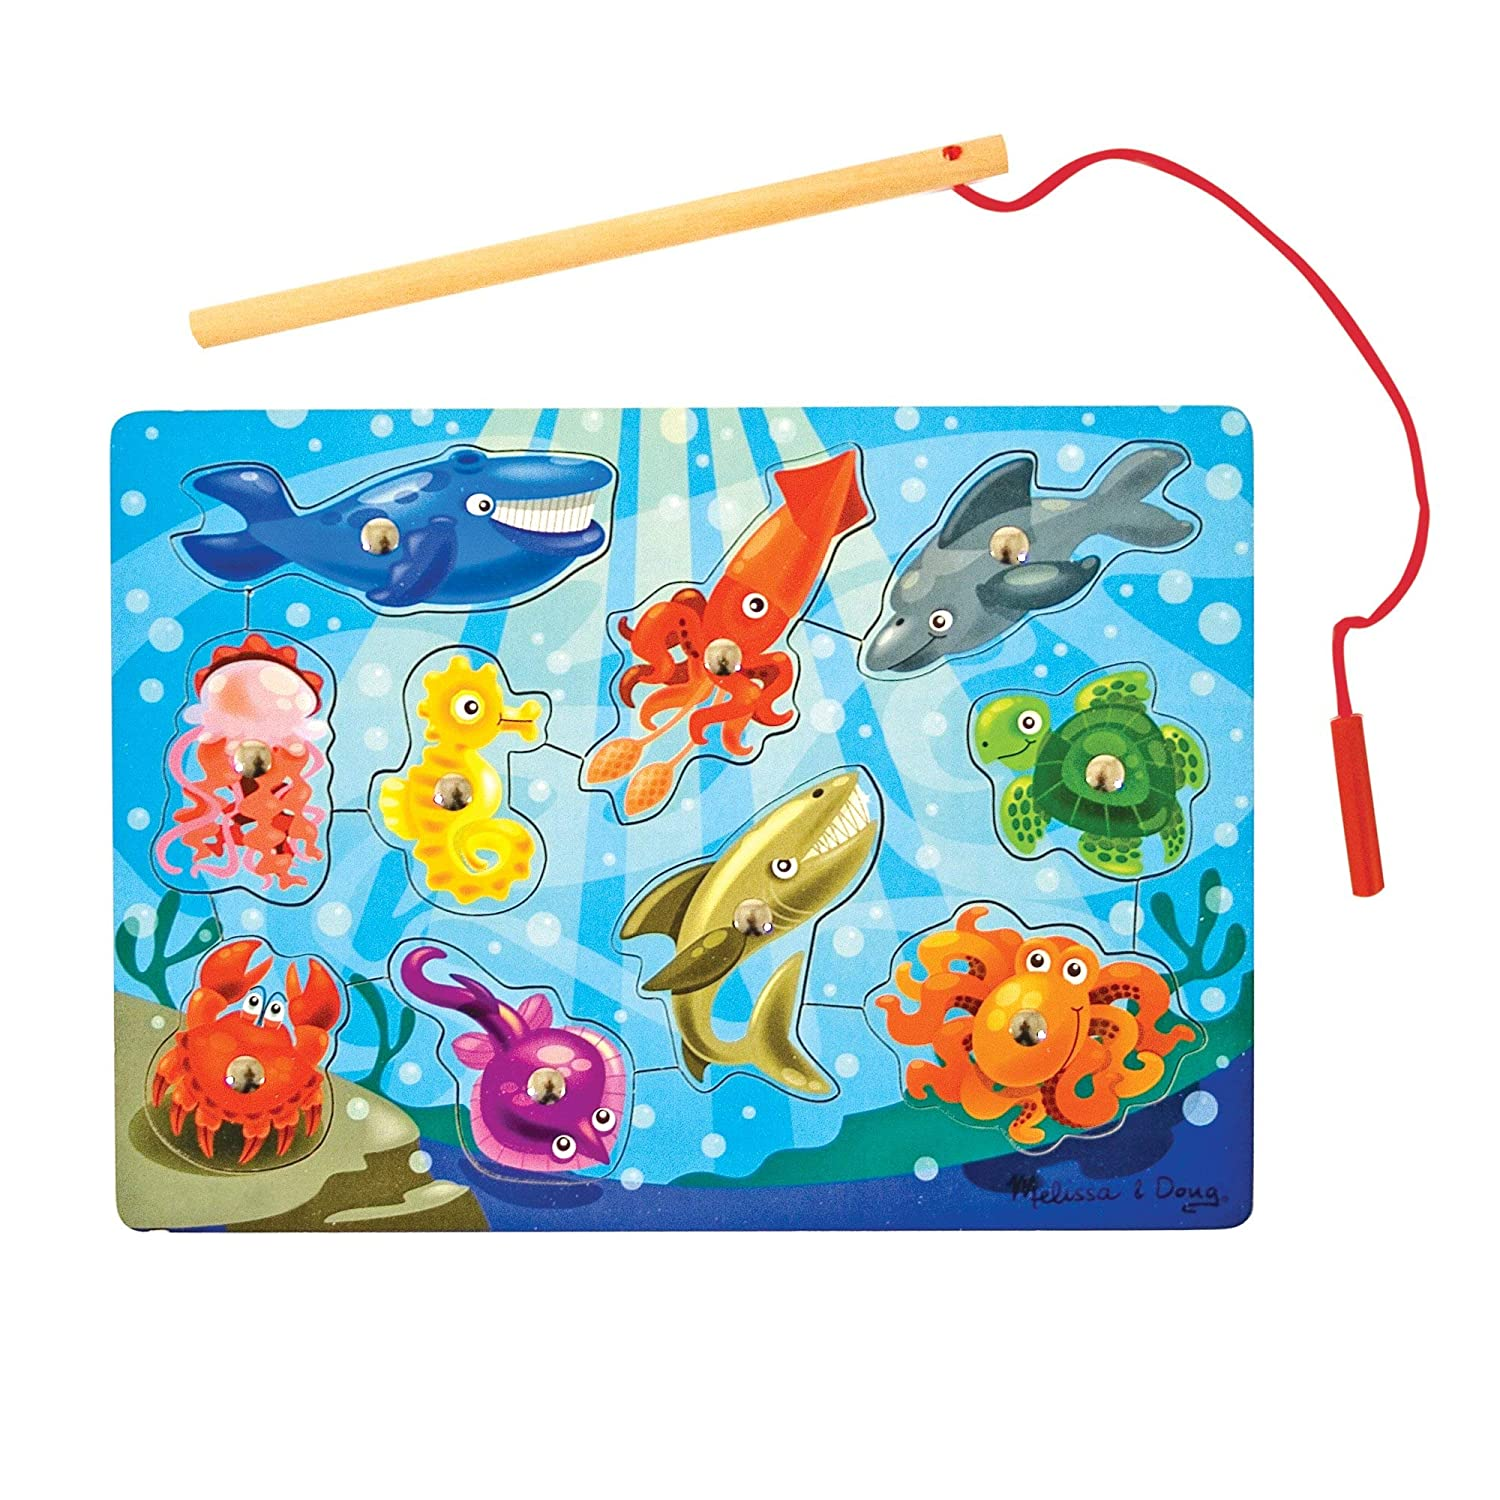 Melissa & Doug Magnetic Wooden Fishing Game and Puzzle With Wooden Ocean Animal Magnets